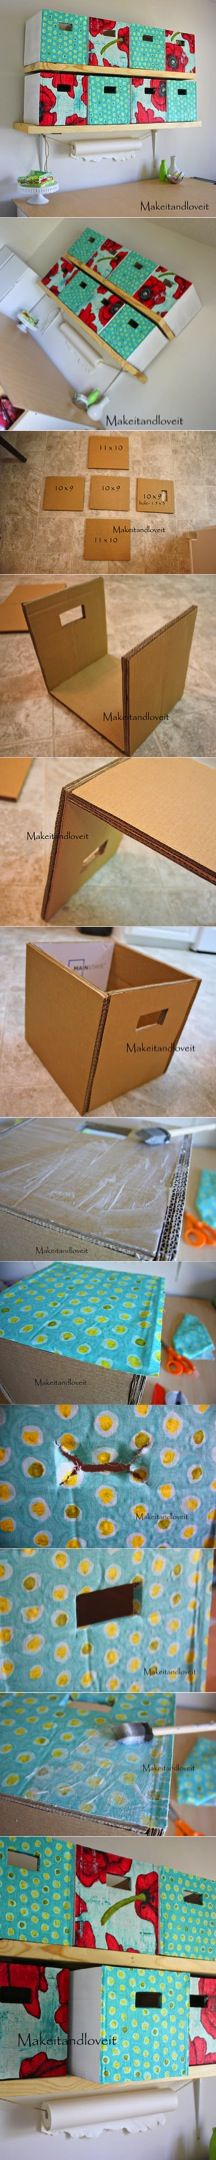 Craft Room, Part 1 (covered cardboard storage boxes) - Diy Crafts Cardboard Storage, Cardboard Furniture, Craft Room Storage, Cardboard Crafts, Diy Storage, Diy Organization, Storage Boxes, Diy Furniture, Paper Crafts